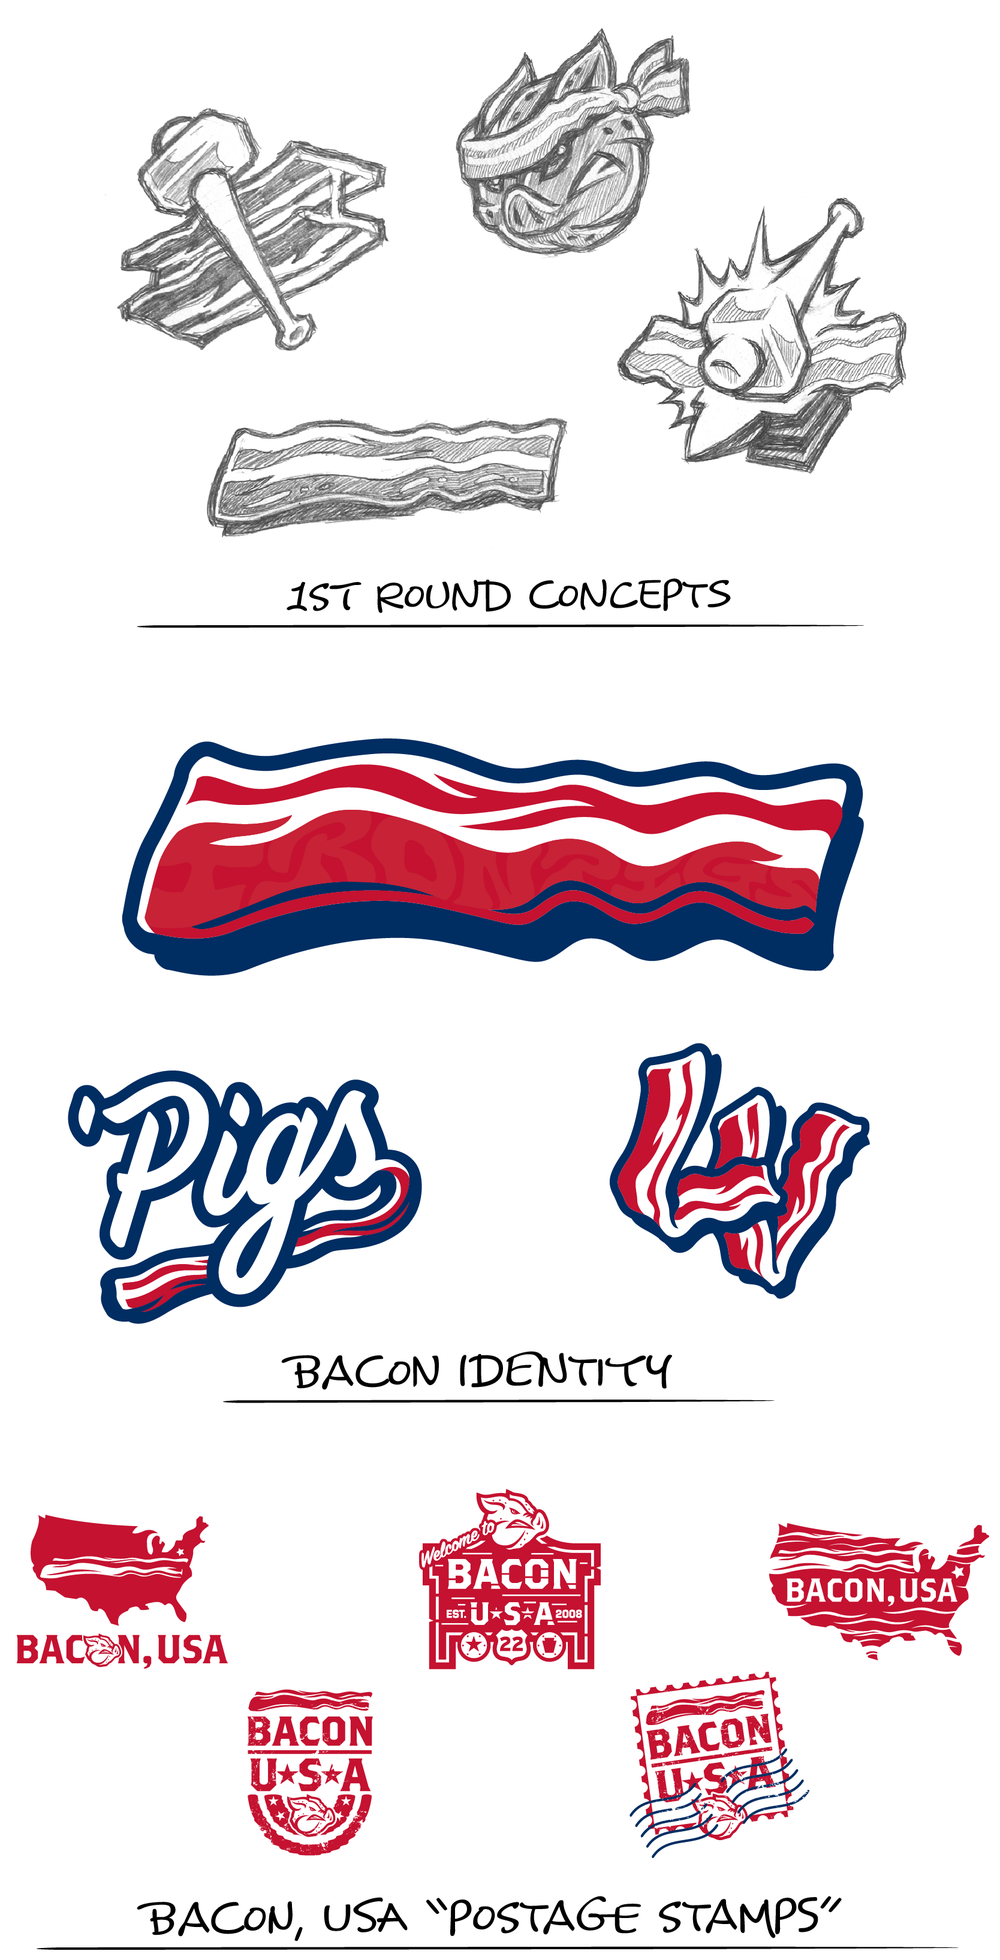 Lehigh-3-BallparkMagic_Bacon-2.png